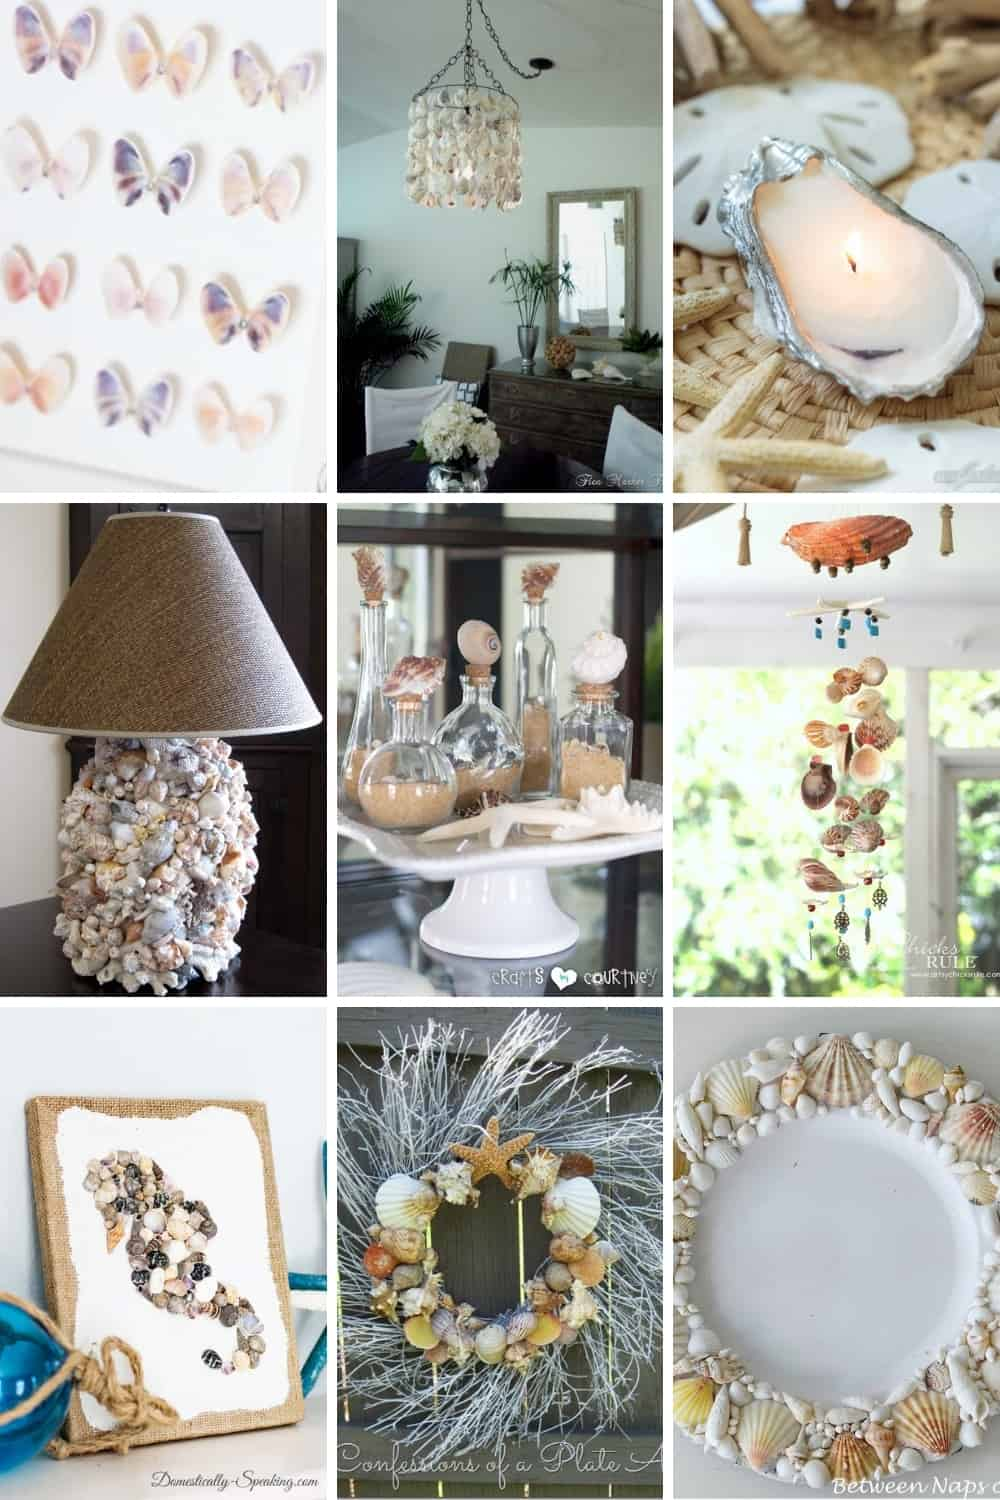 collage of home decor items and crafts made from seashells